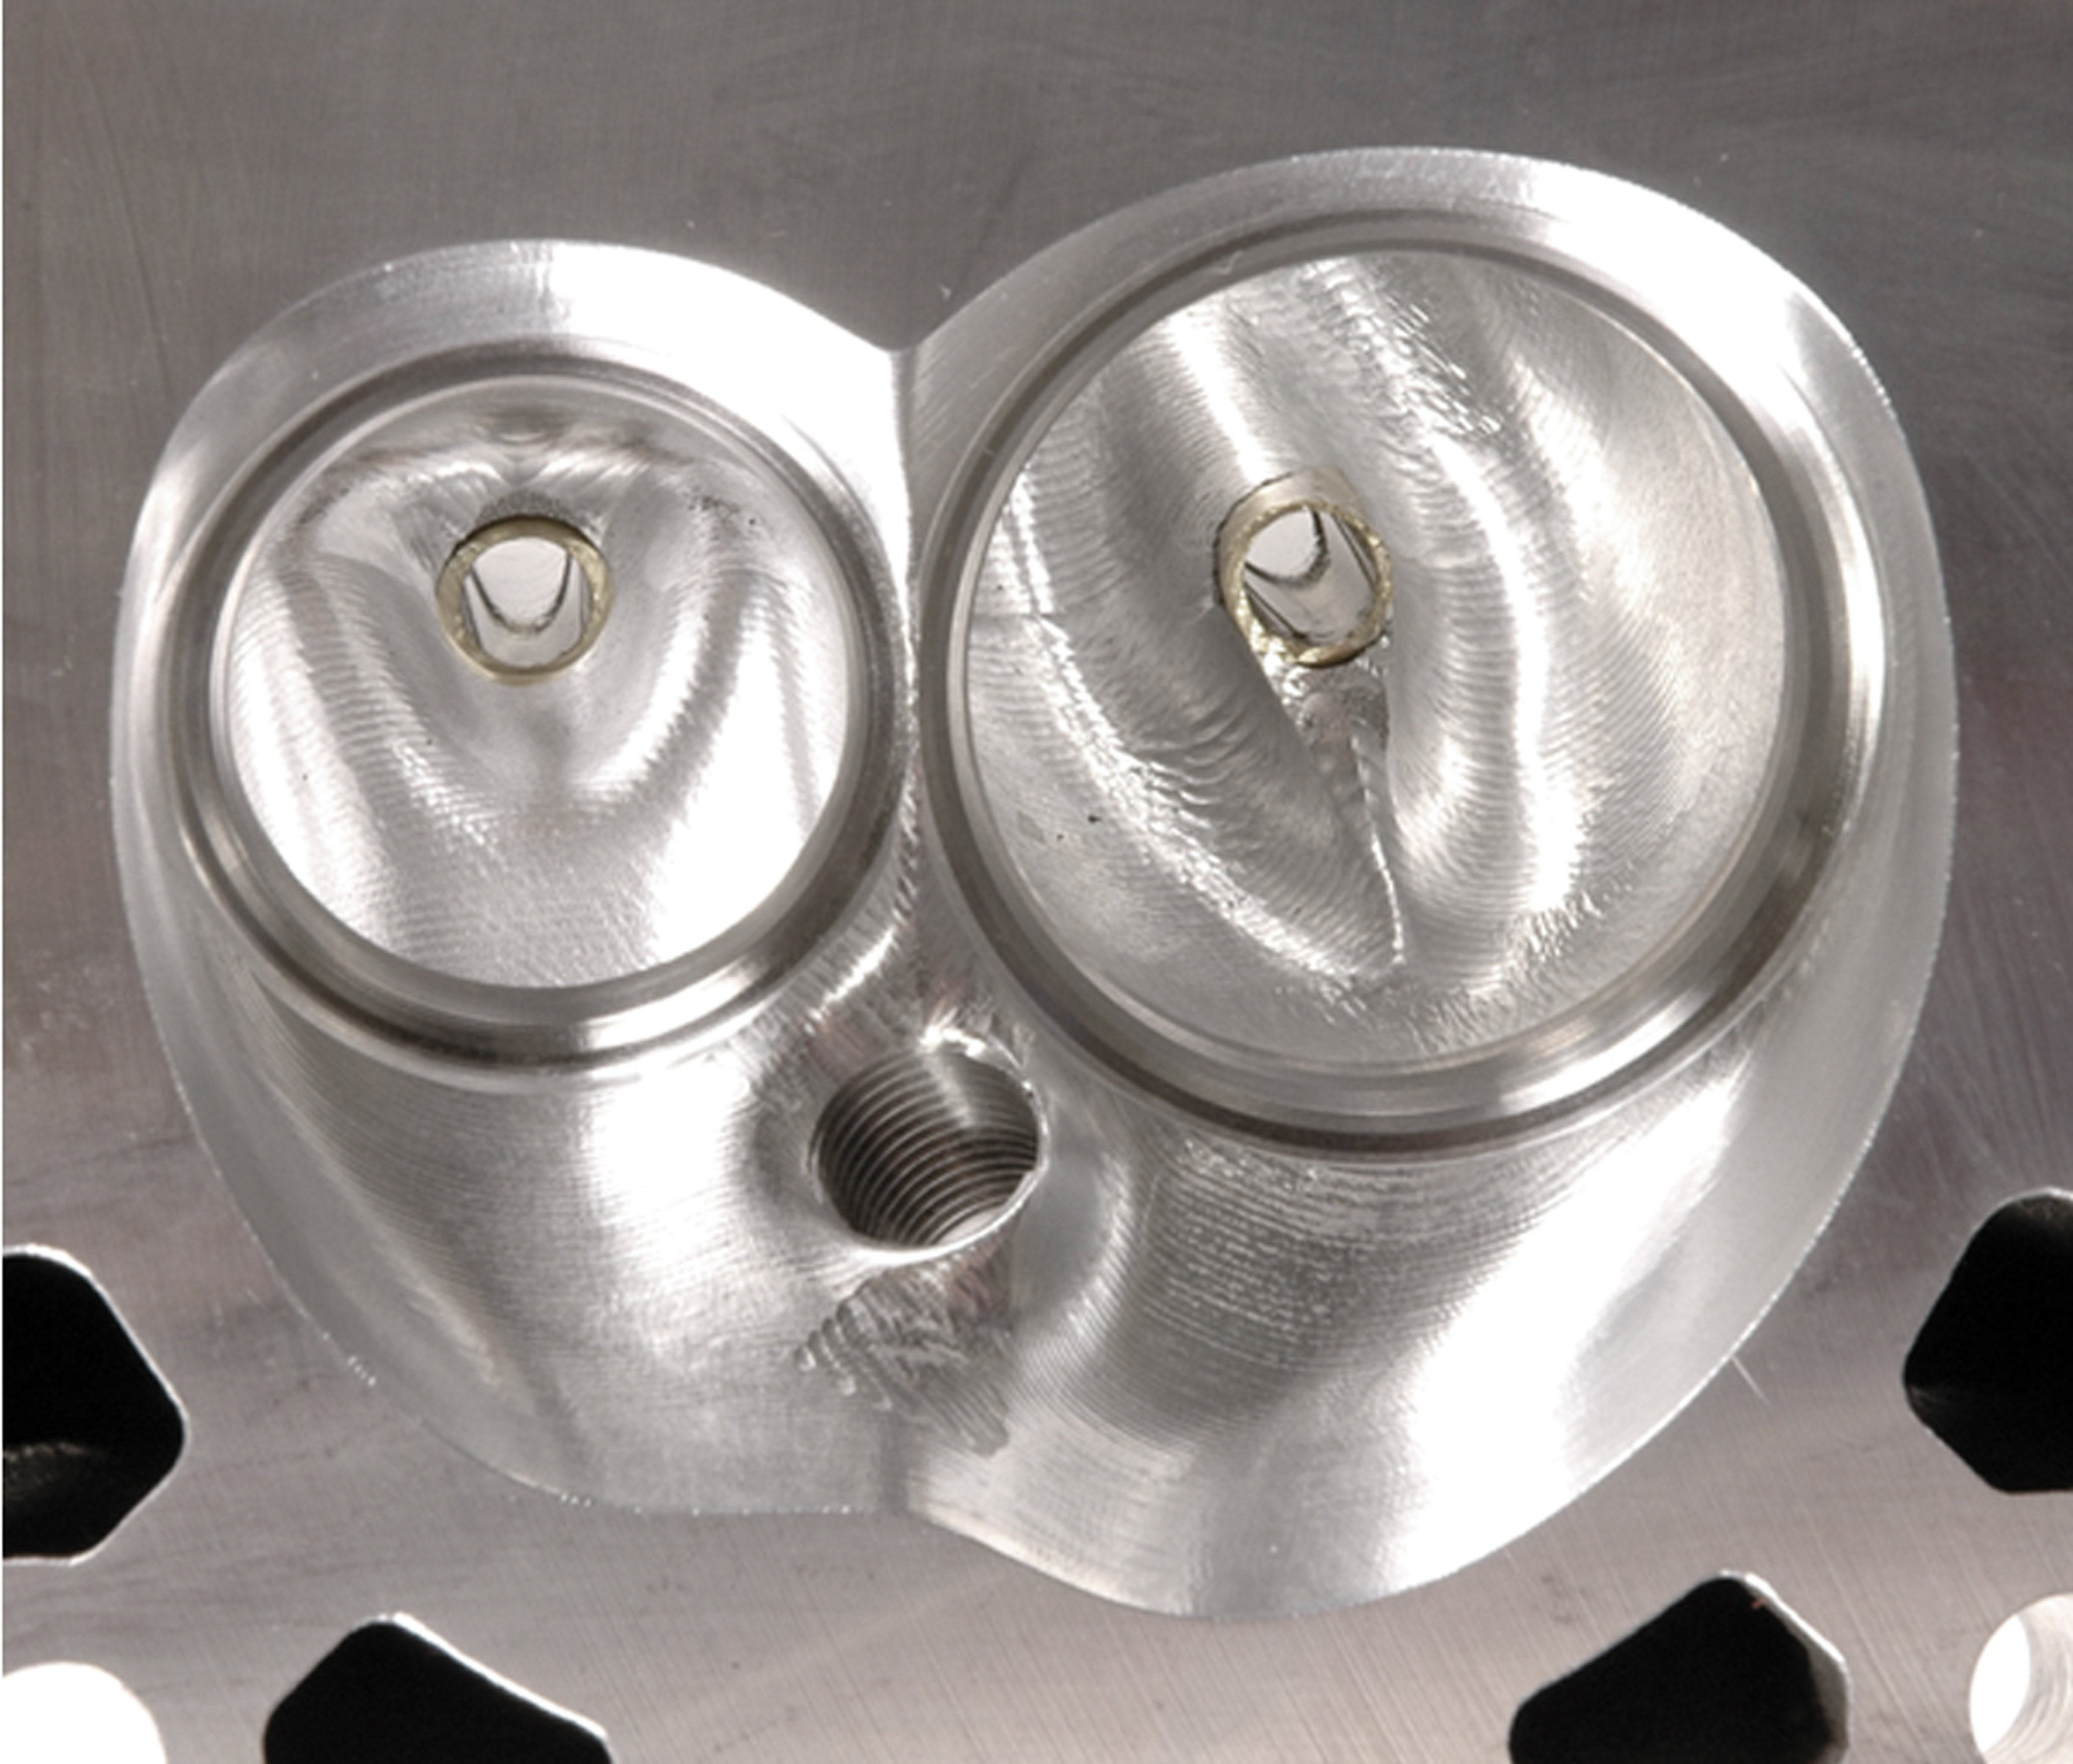 Cylinder Head Fundamentals: Materials, Options, and Terms